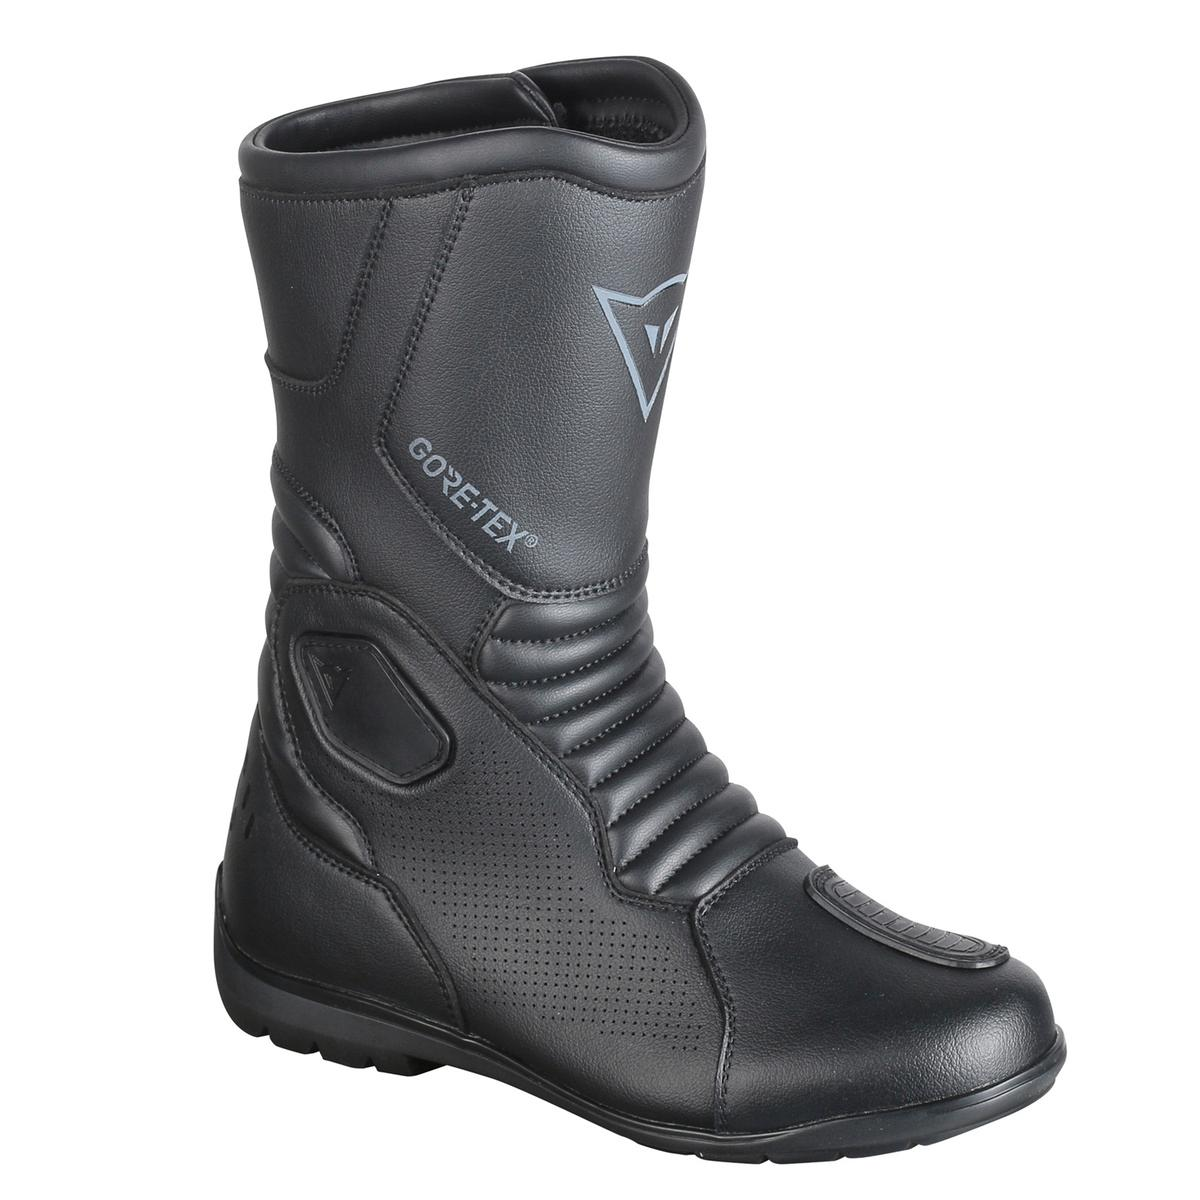 FREELAND LADY GORE-TEX BOOTS Dainese black